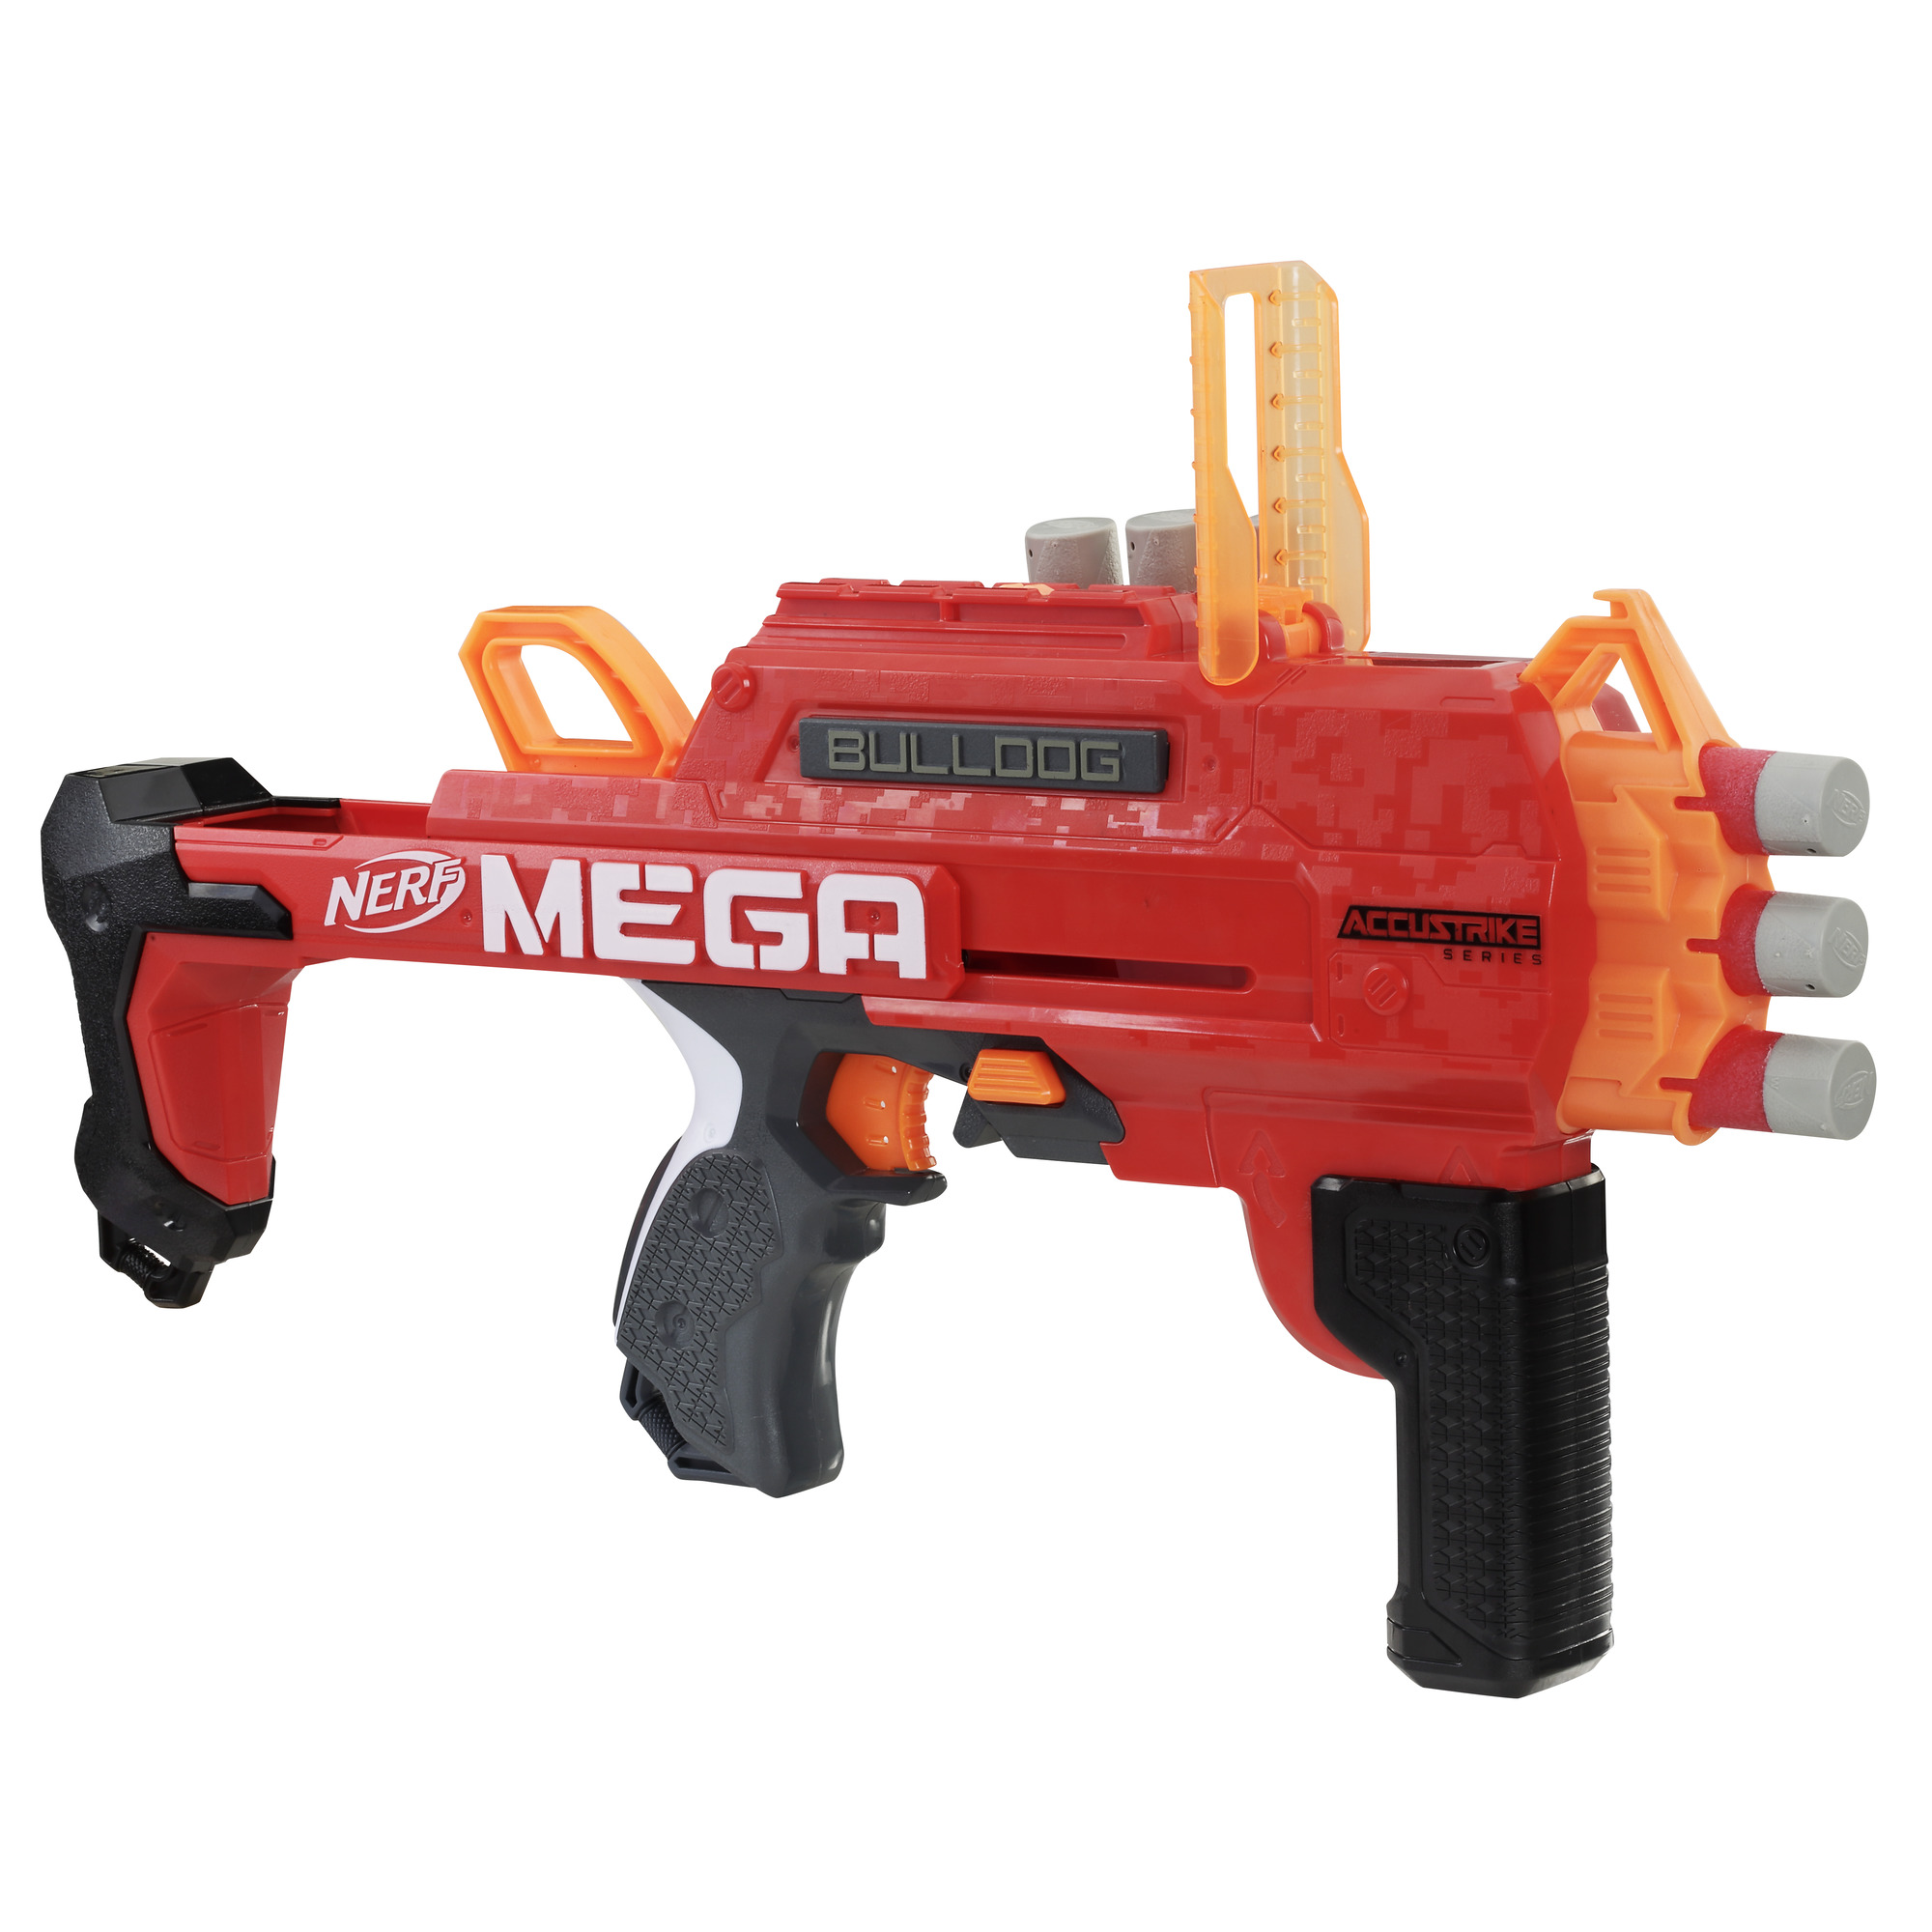 Bulldog | Nerf Mega used in our Fortnite Parties